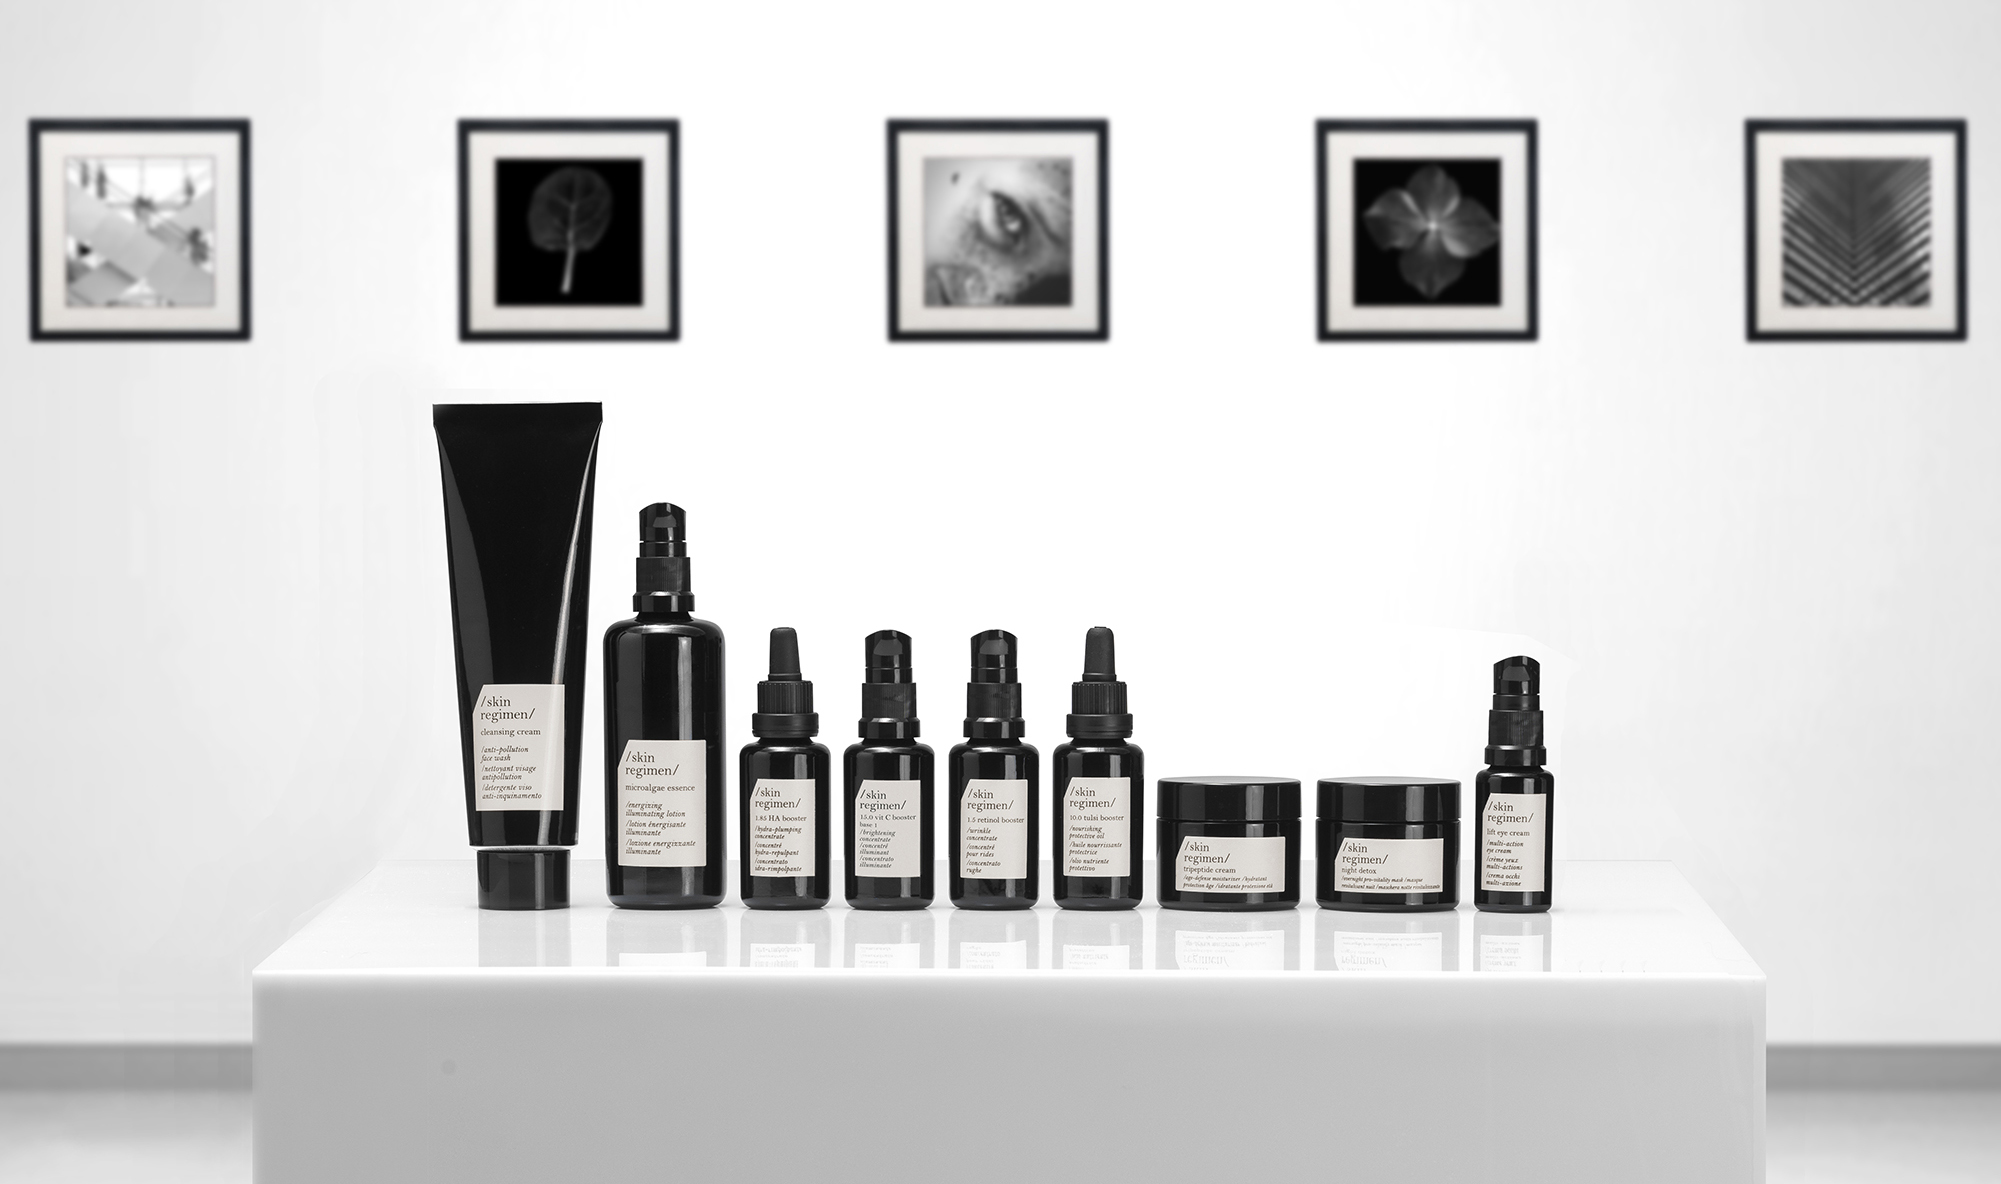 SKIN REGIMEN PRODUCT FAMILY_CAN_cropped